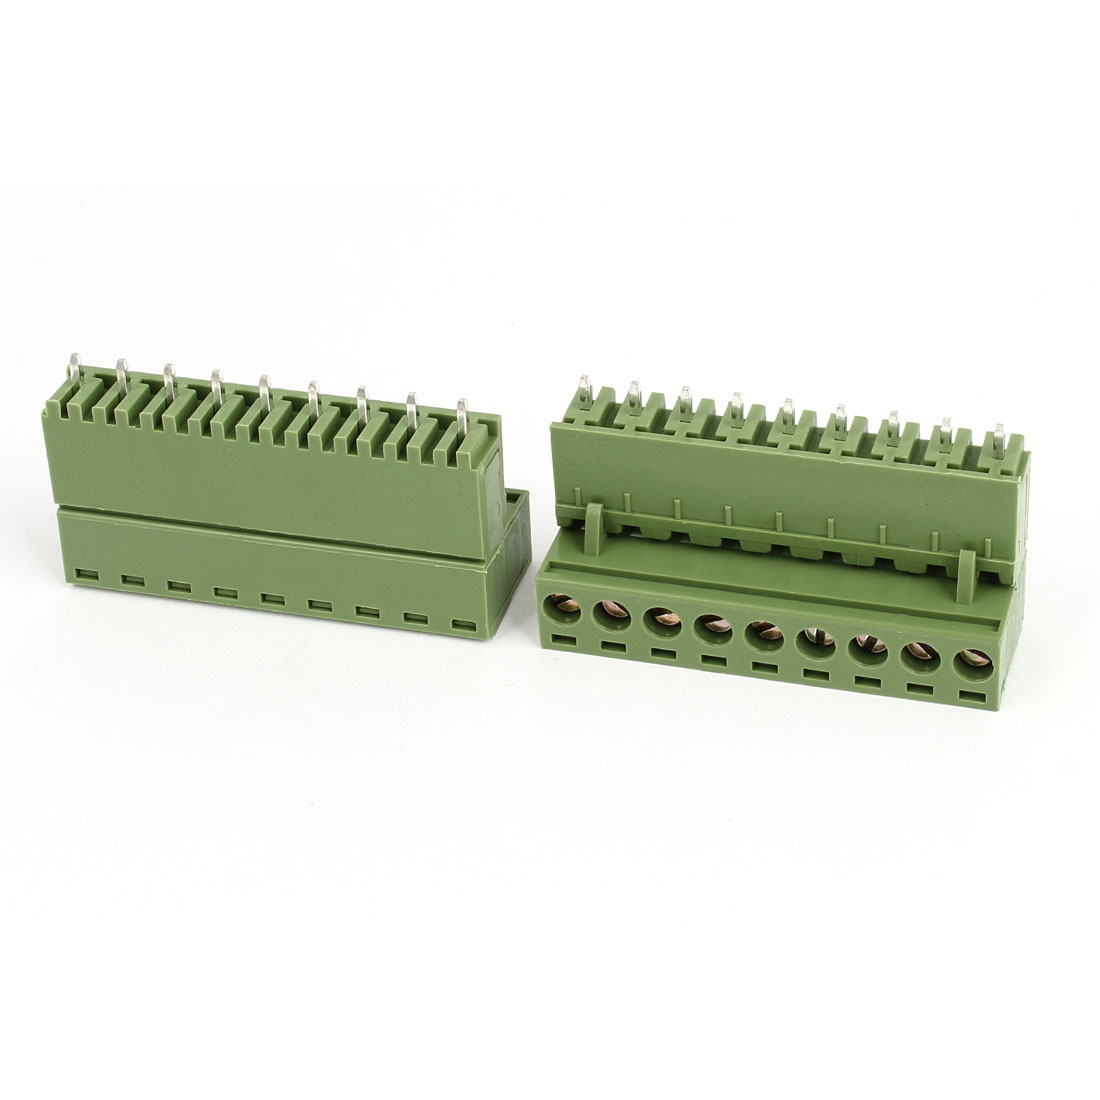 2Pcs 300V 10A 9P Pins PCB Screw Terminal Block Connector 5.08mm Pitch Army Green